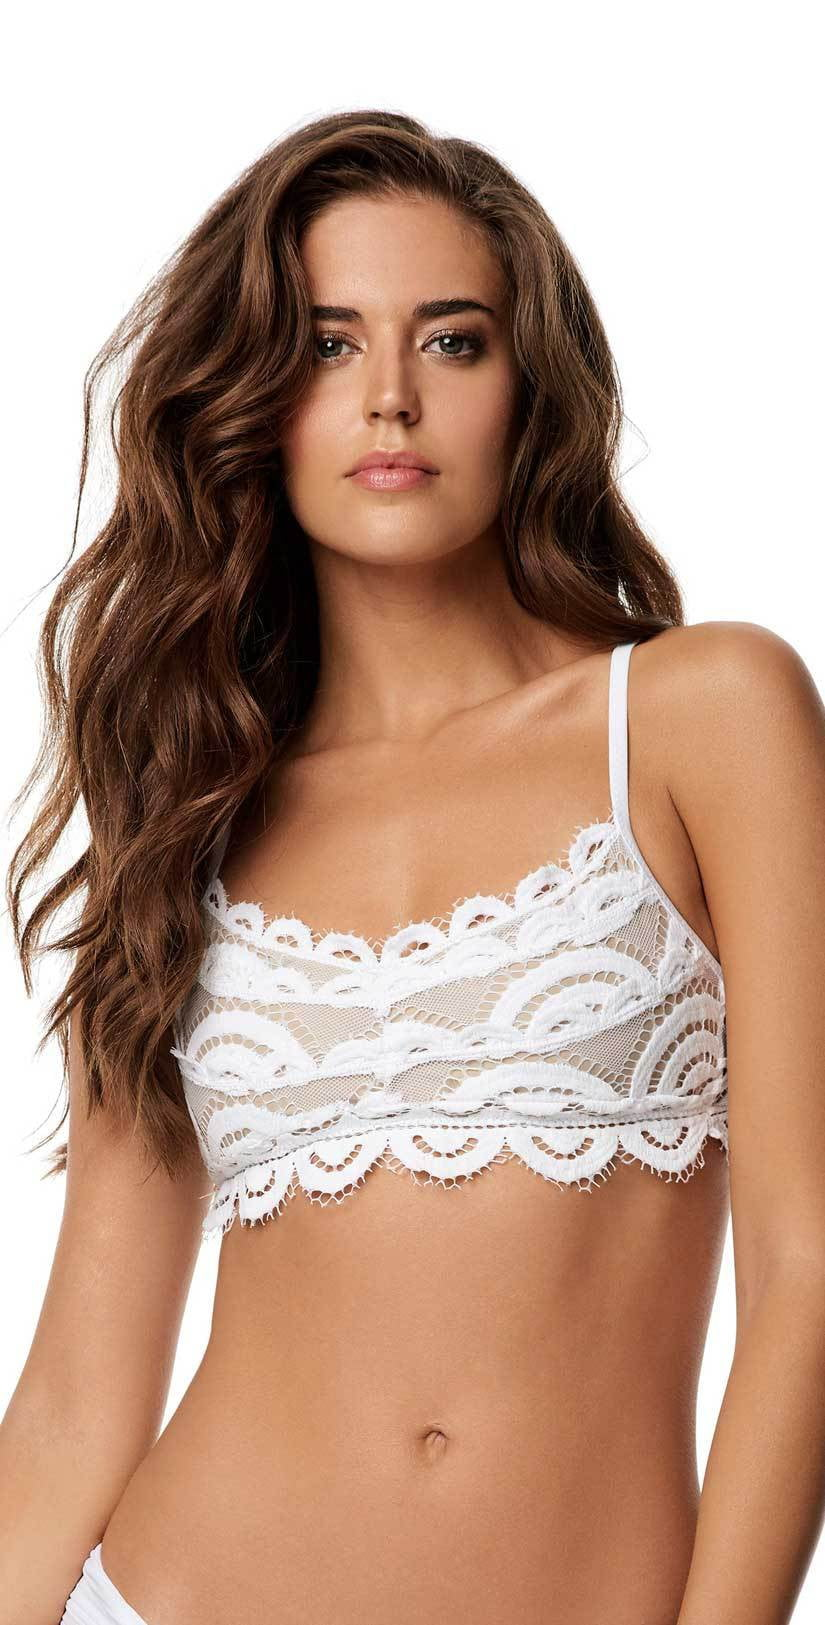 PilyQ Waterlily White Lace Bralette Top WAT-131B front studio